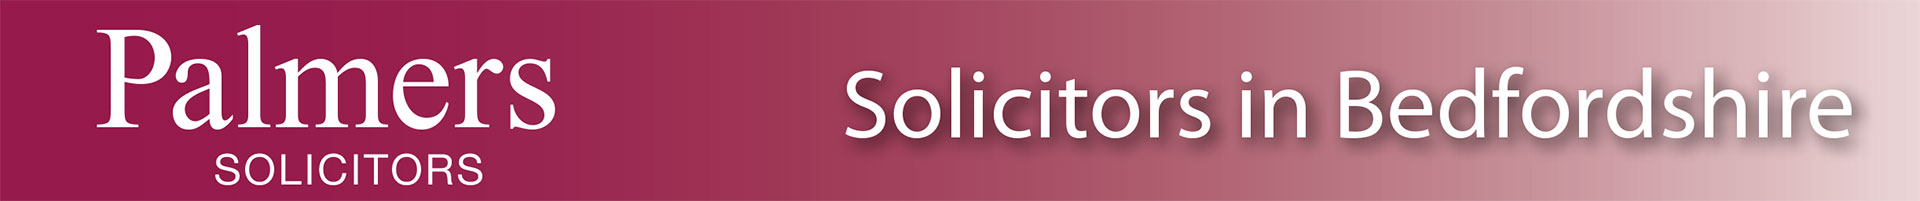 palmers solicitors in Bedfordshire